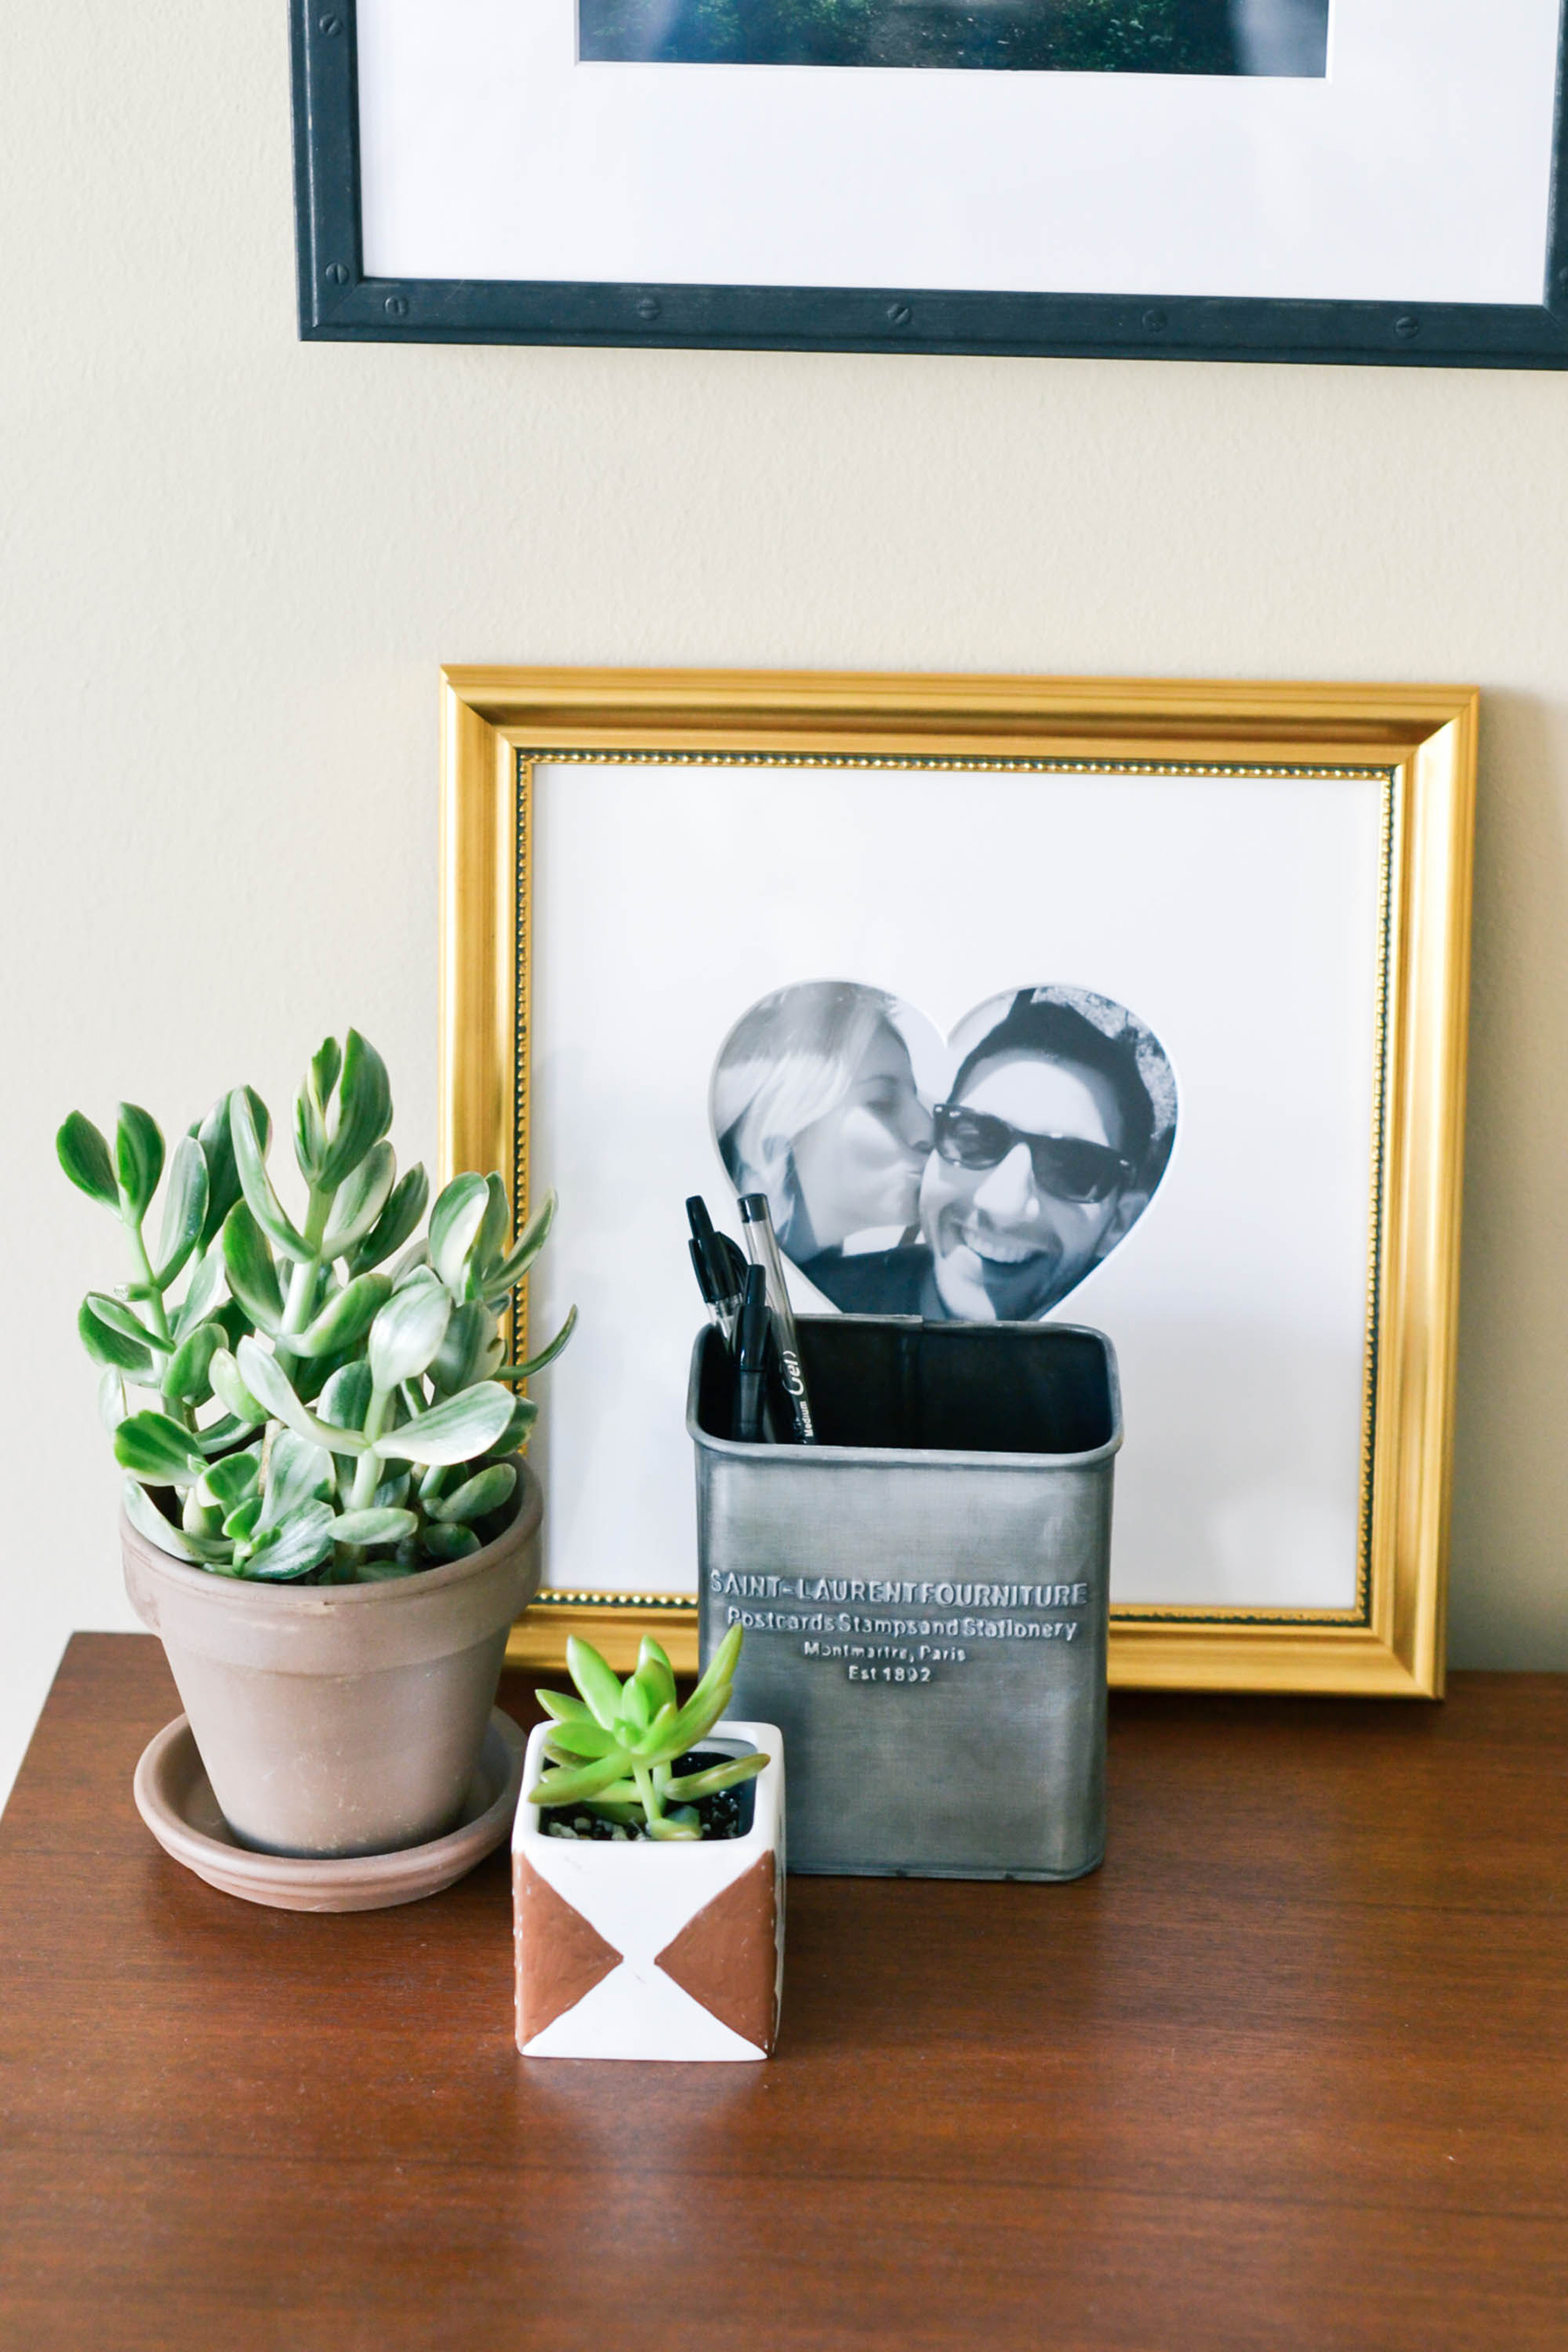 framebridge gallery wall, stylish frames, custom frames, decorating guys apartment, masculine decor, masculine apartment decor, succulents, photography by Amanda Holstein for Advicefroma20Something.com